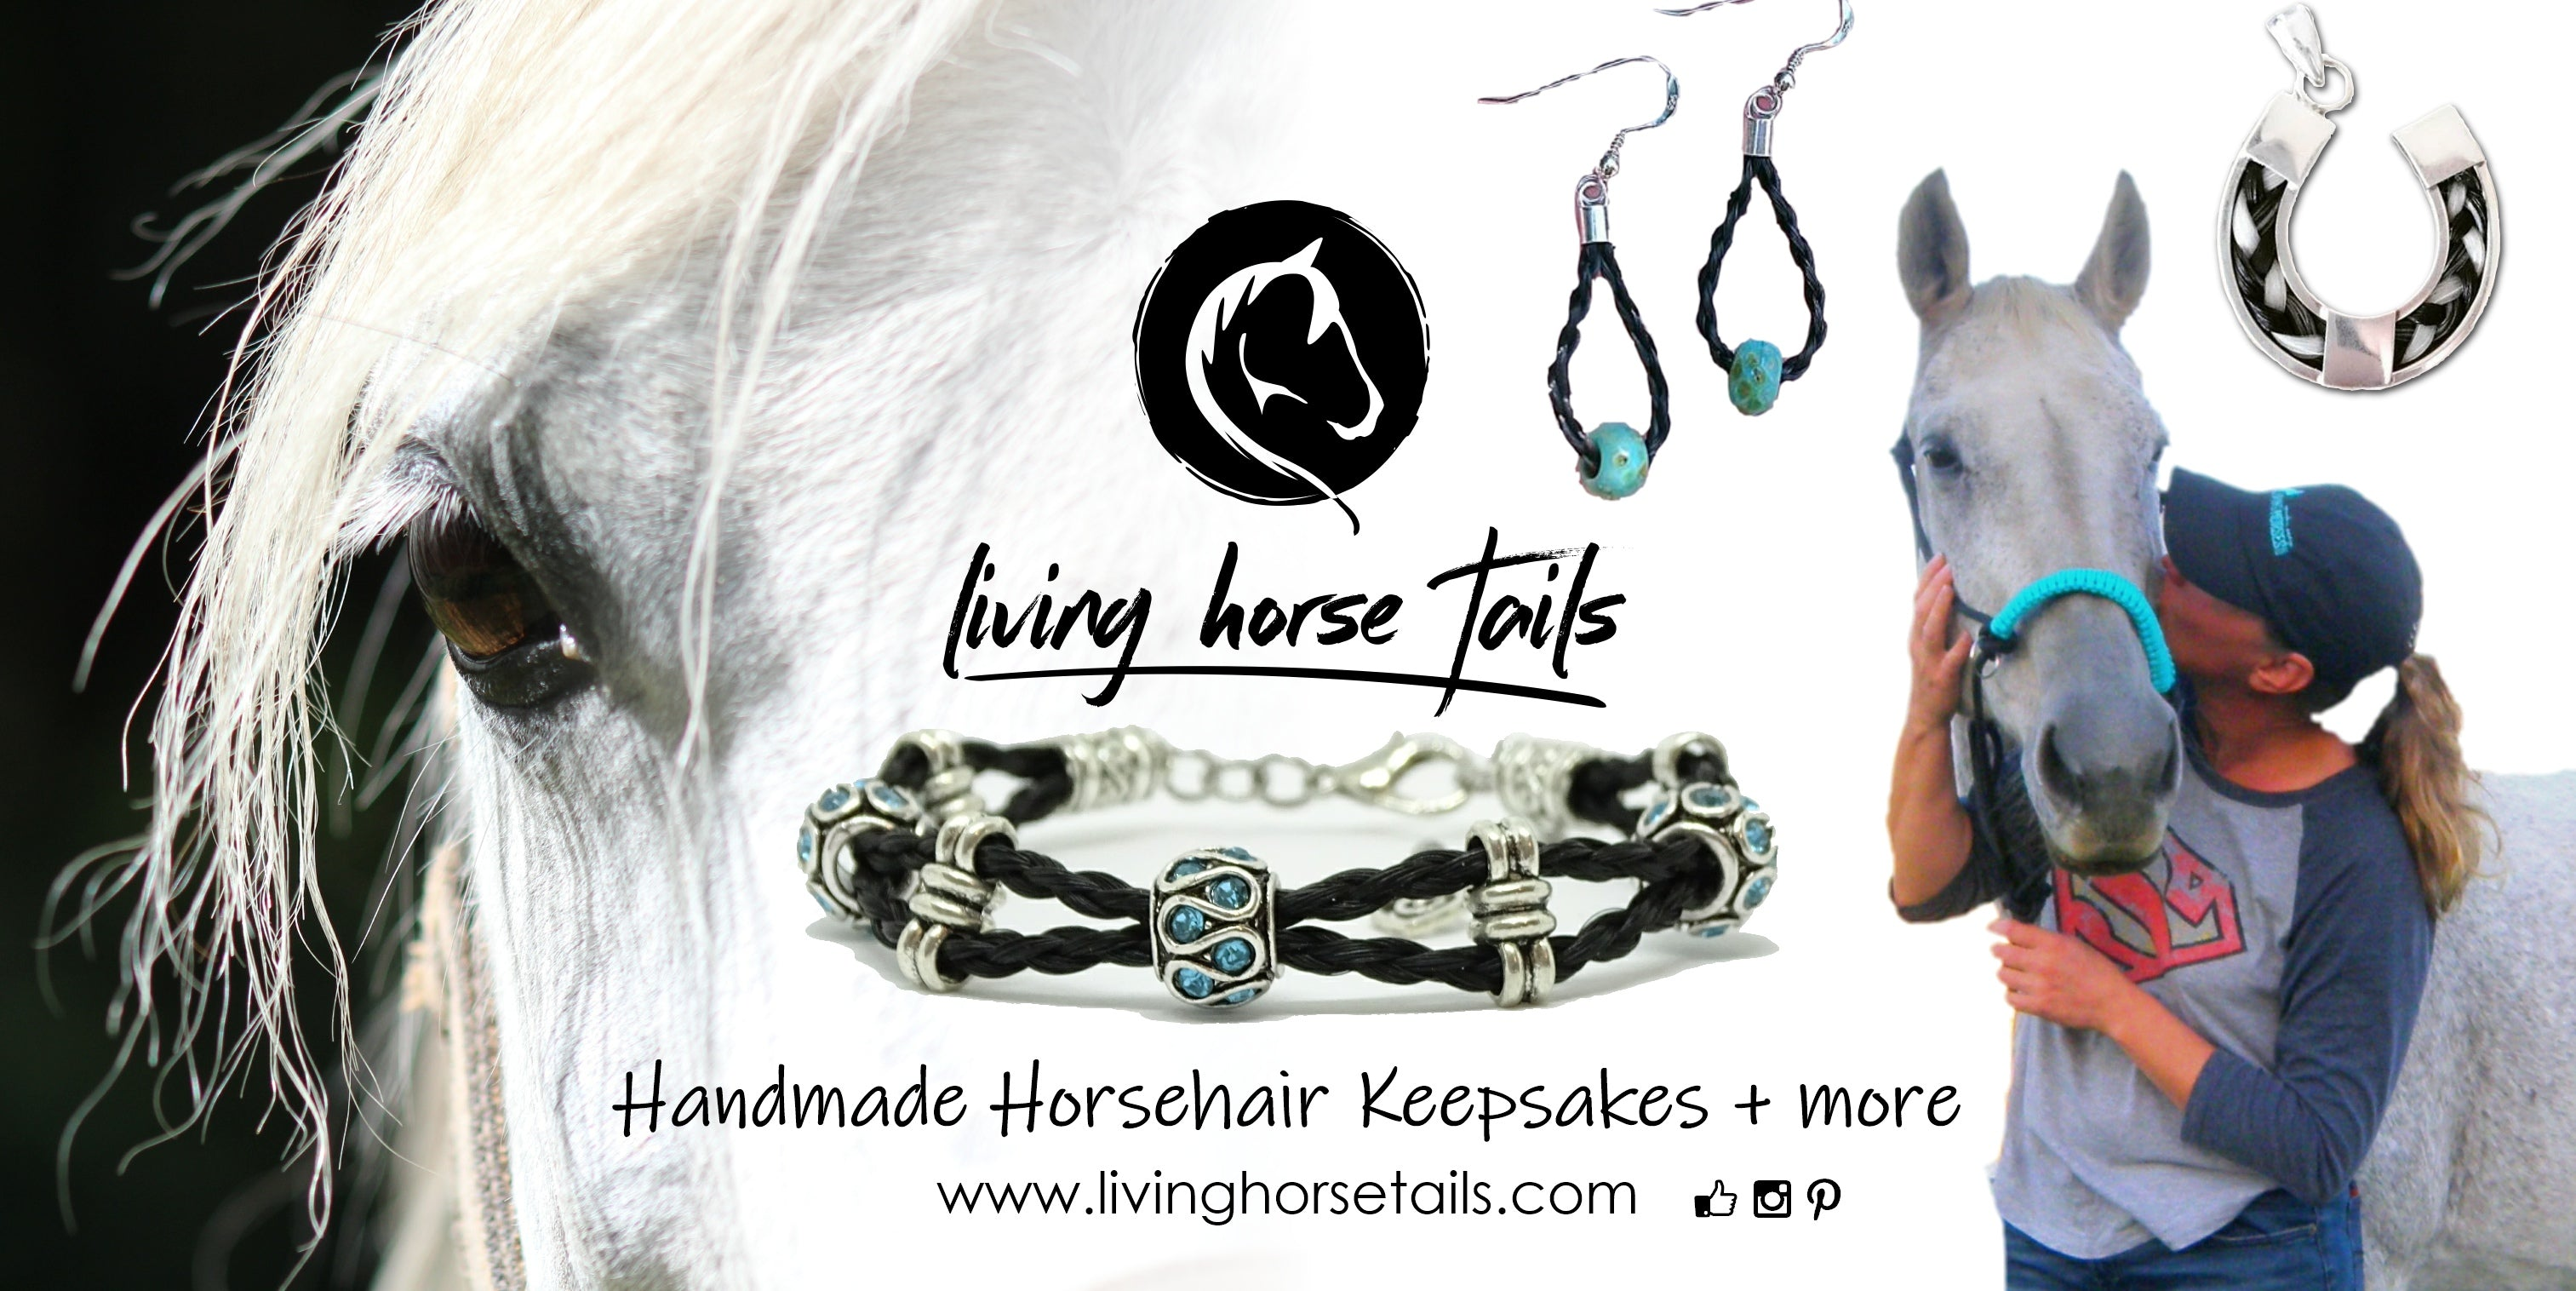 Exquisite Horsehair Jewellery, Bracelets, Keepsakes and more by Living Horse Tails